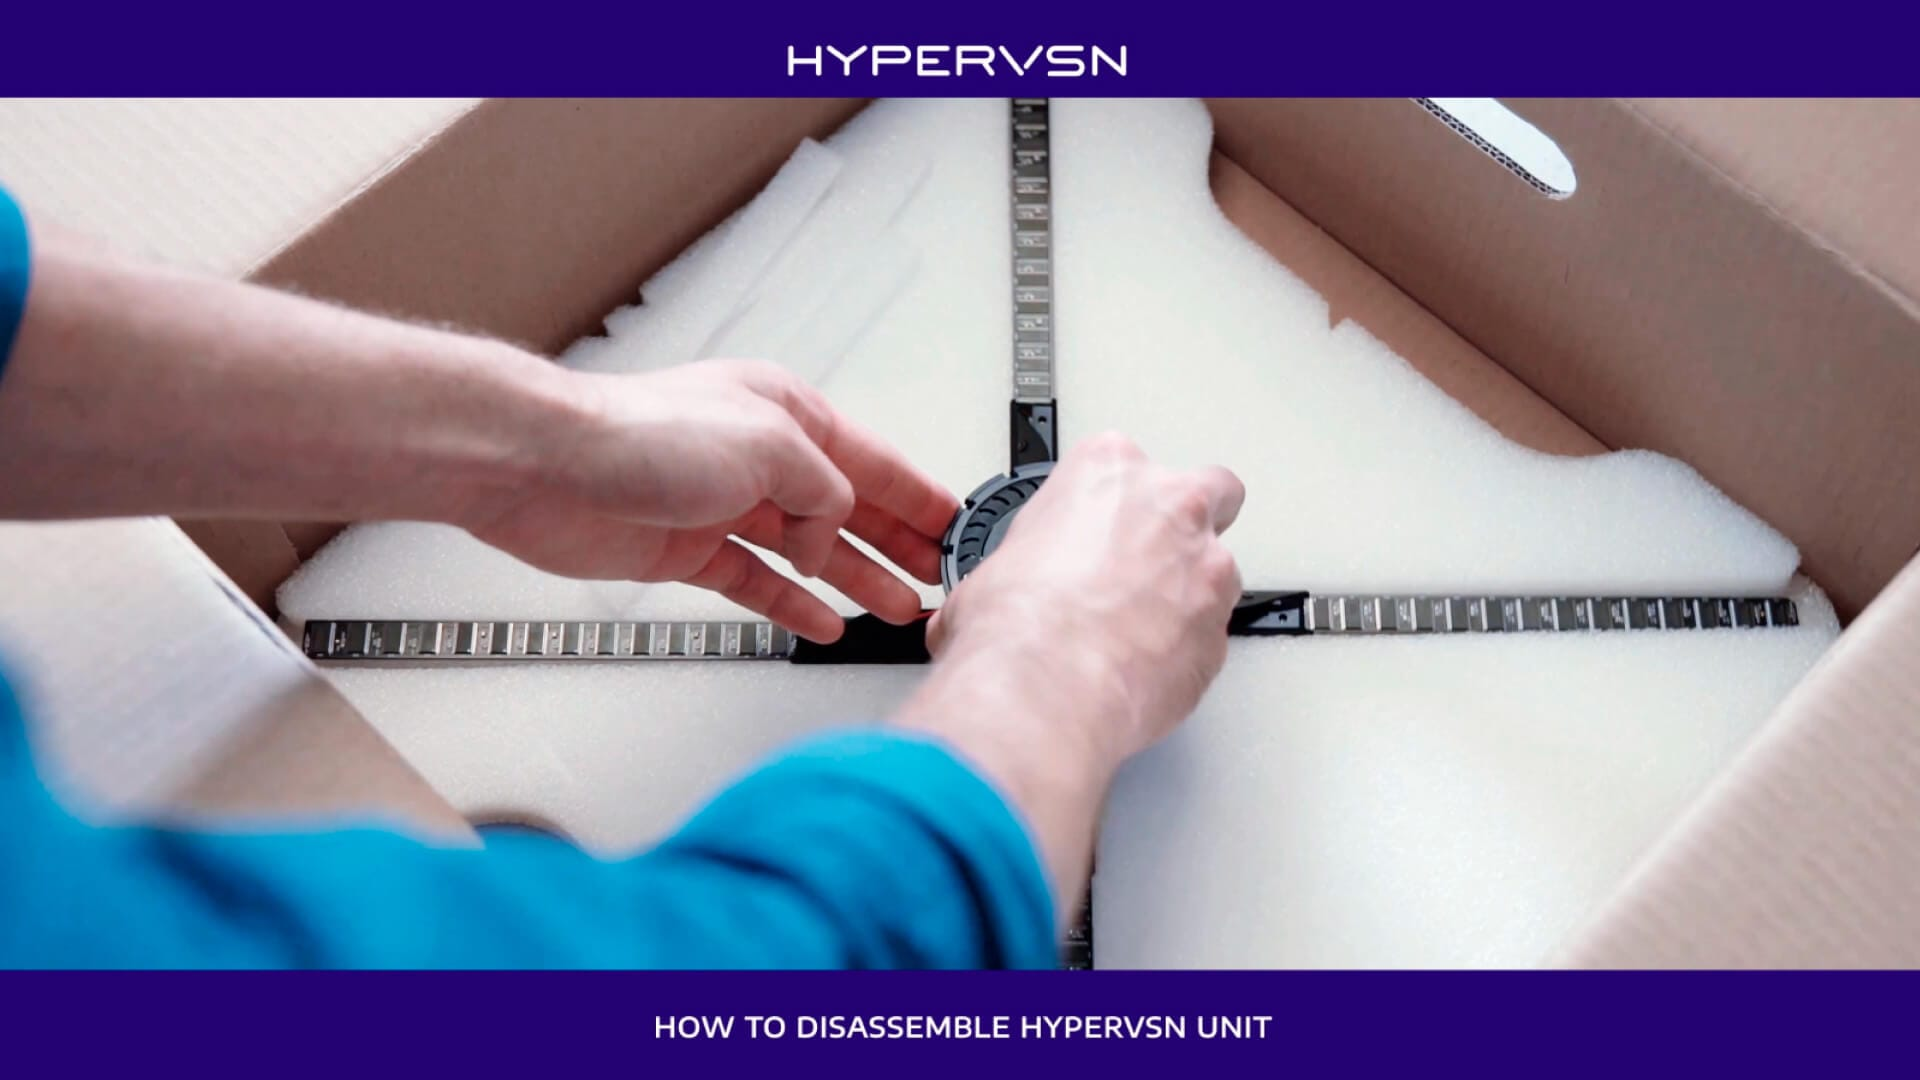 How to disassemble HYPERVSN unit